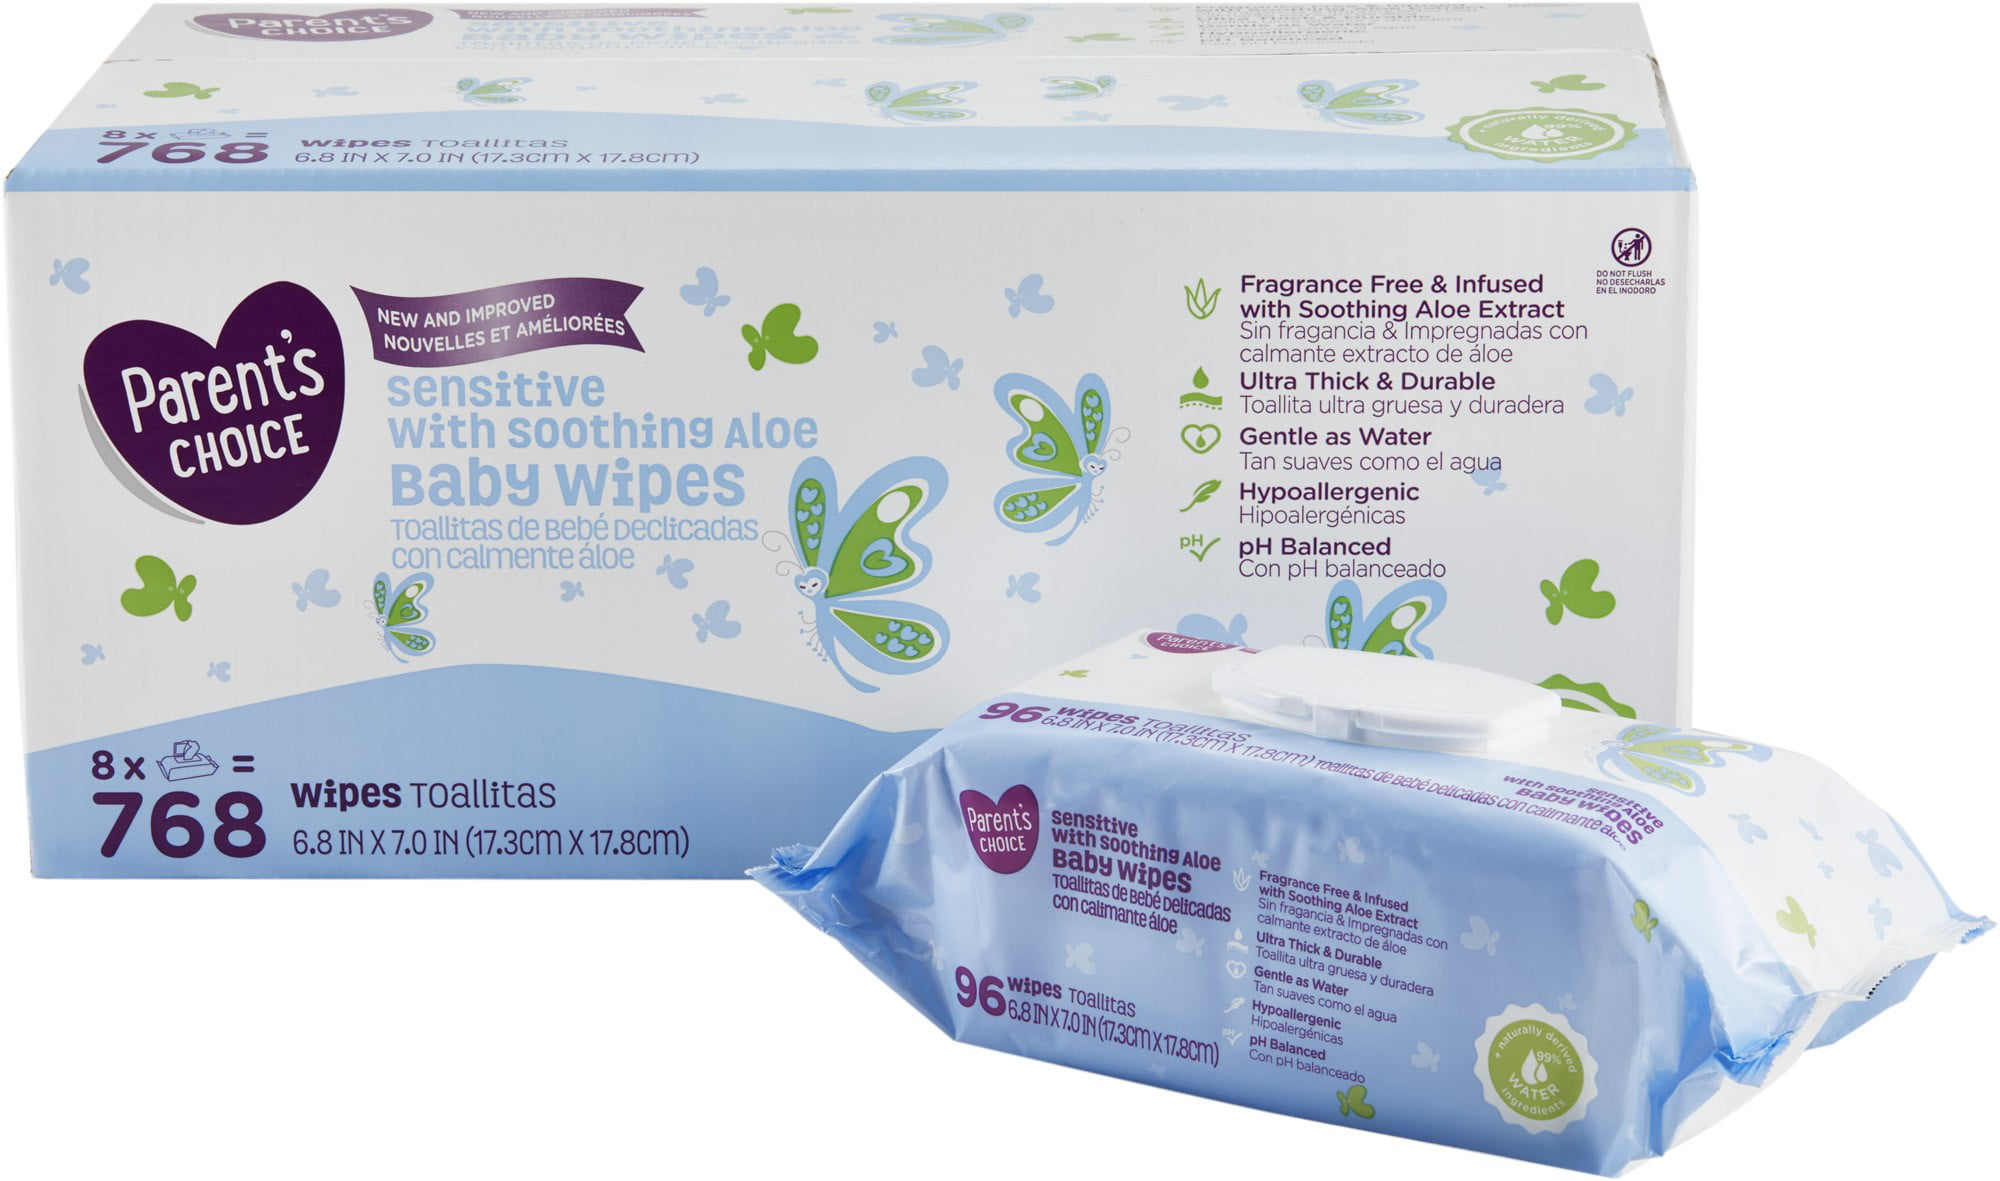 Parent's Choice Baby Wipes, Sensitive Aloe, 8 packs of 96 (768 ct) by Parent%27s Choice